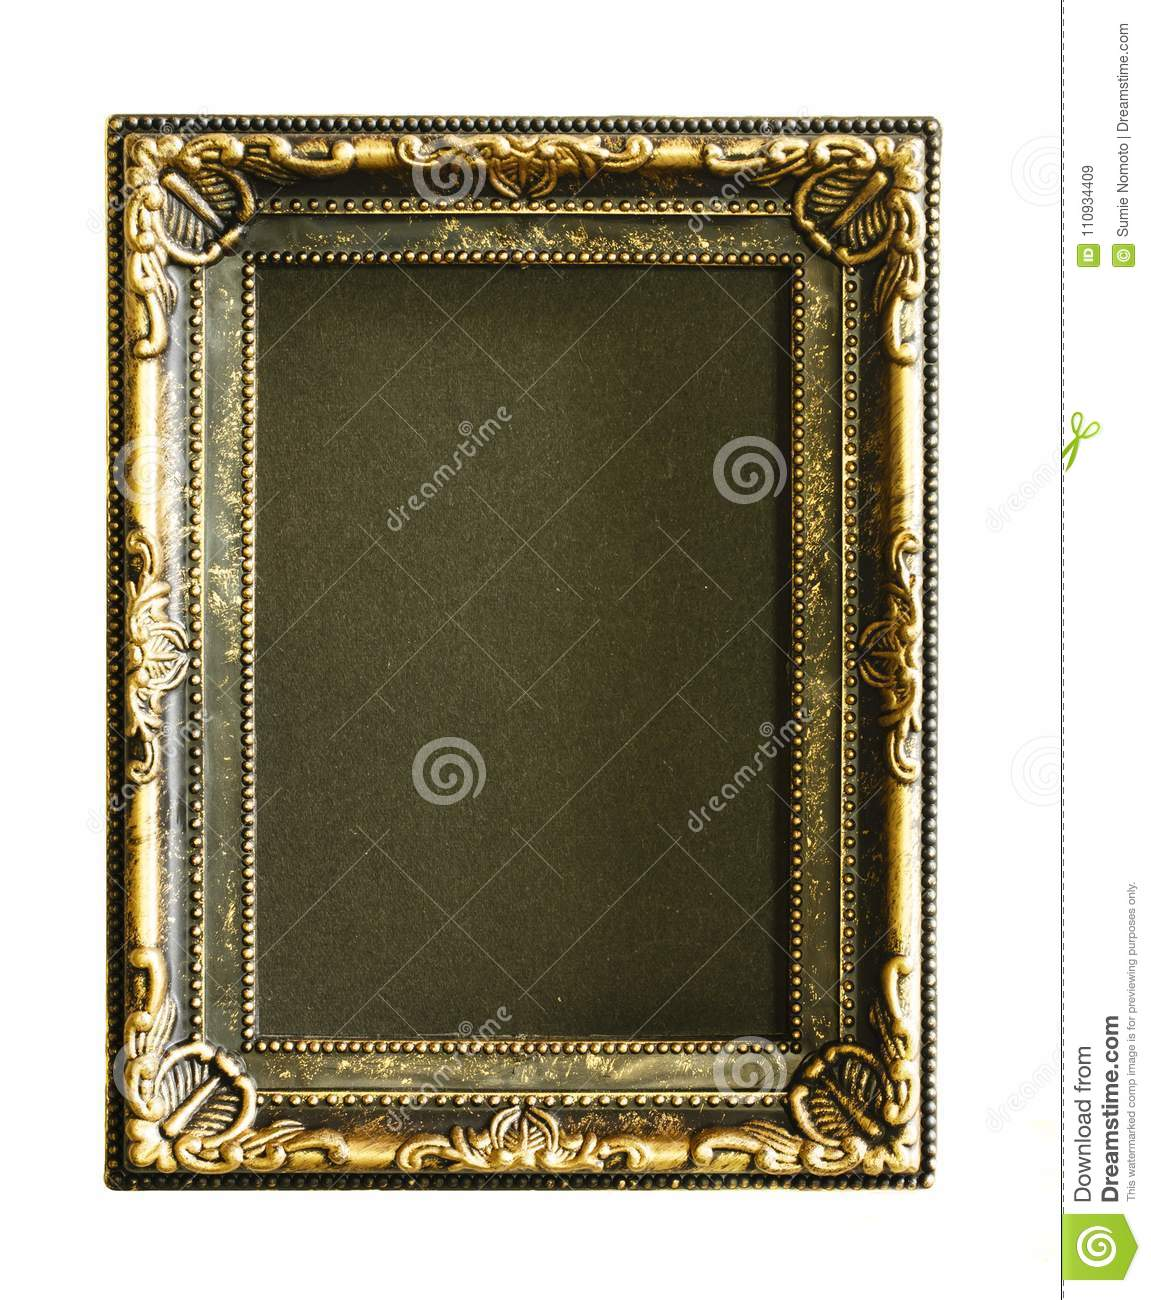 Gold frame. Gold/gilded arts and crafts pattern picture frame. on white. space is black.